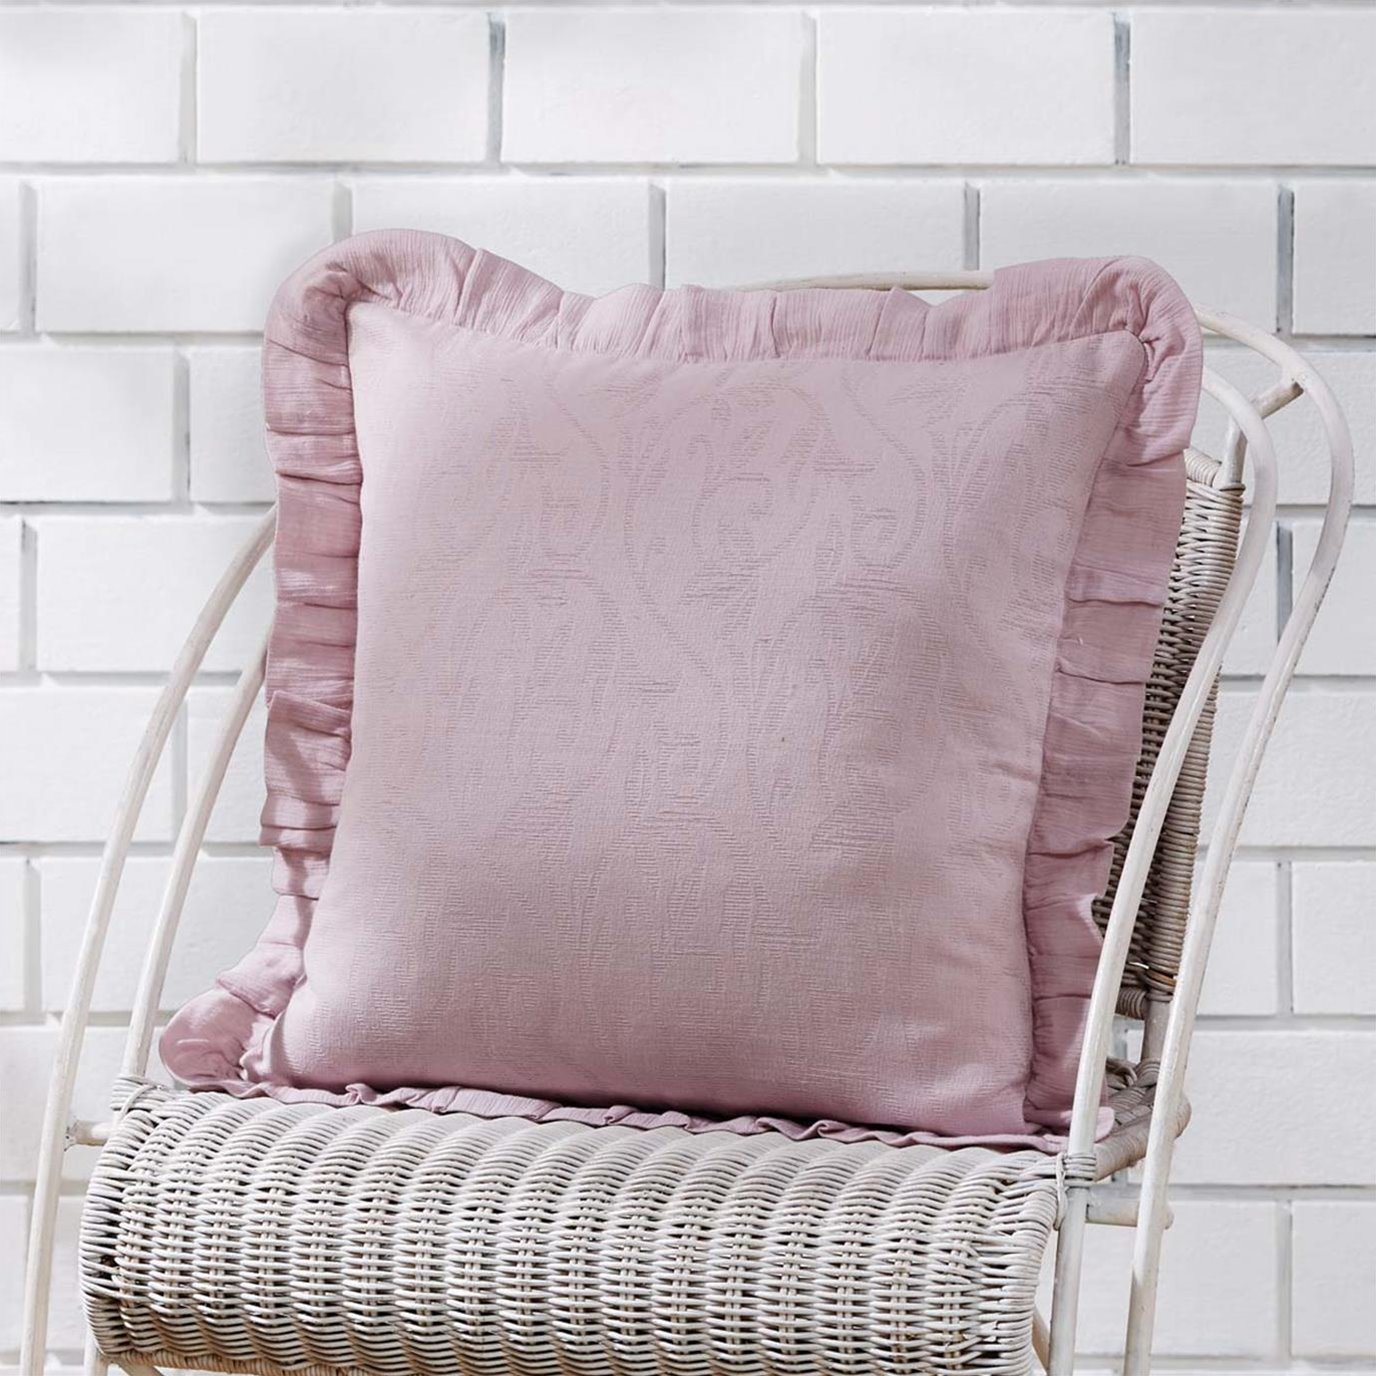 Lilac Ruffle Pillow Cover 18x18